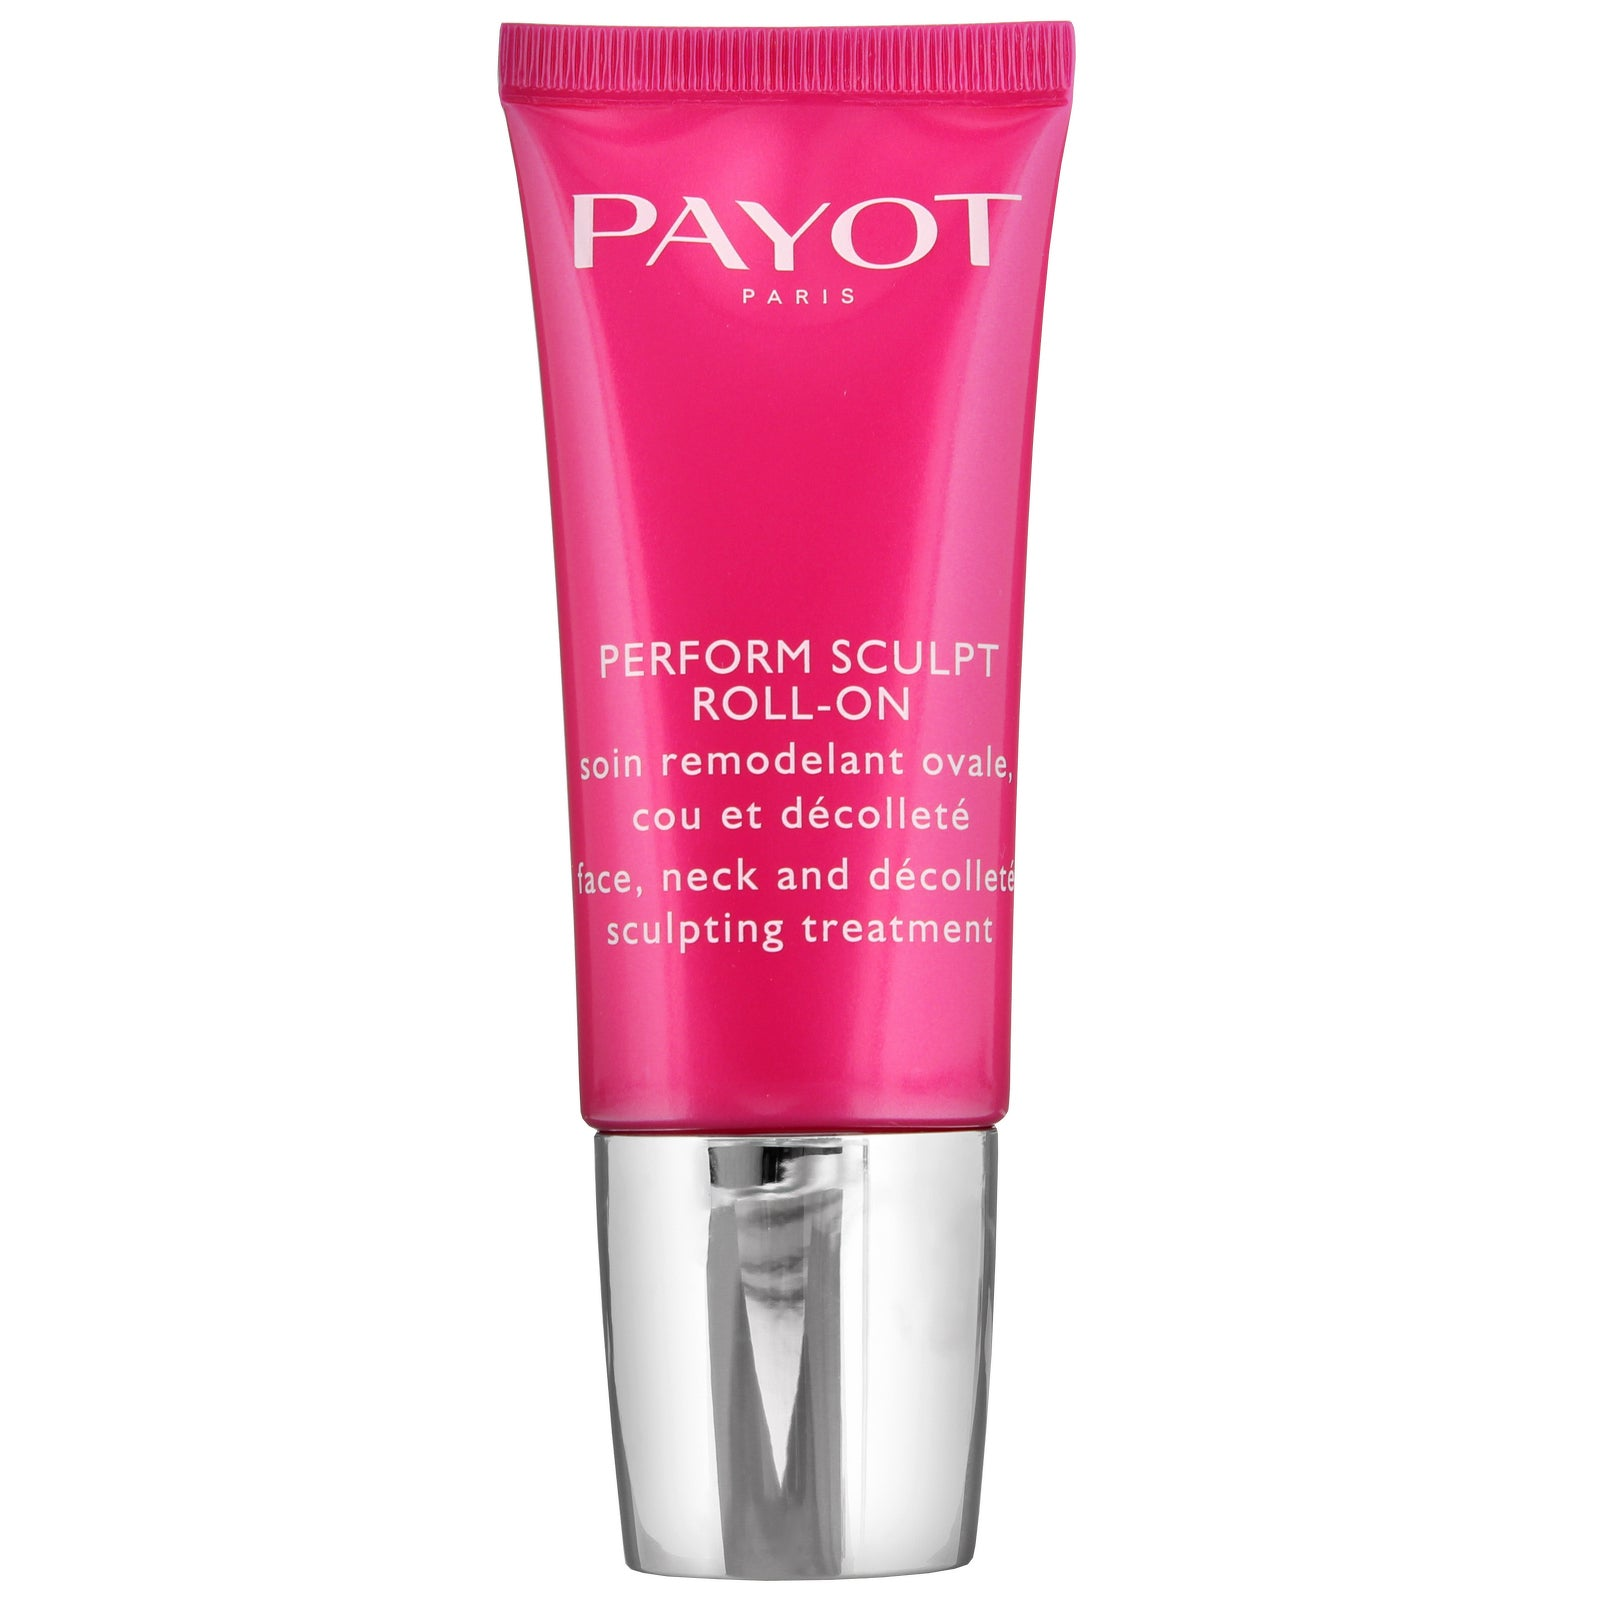 Payot PERFORM SCULPT ROLL-ON - 40ml